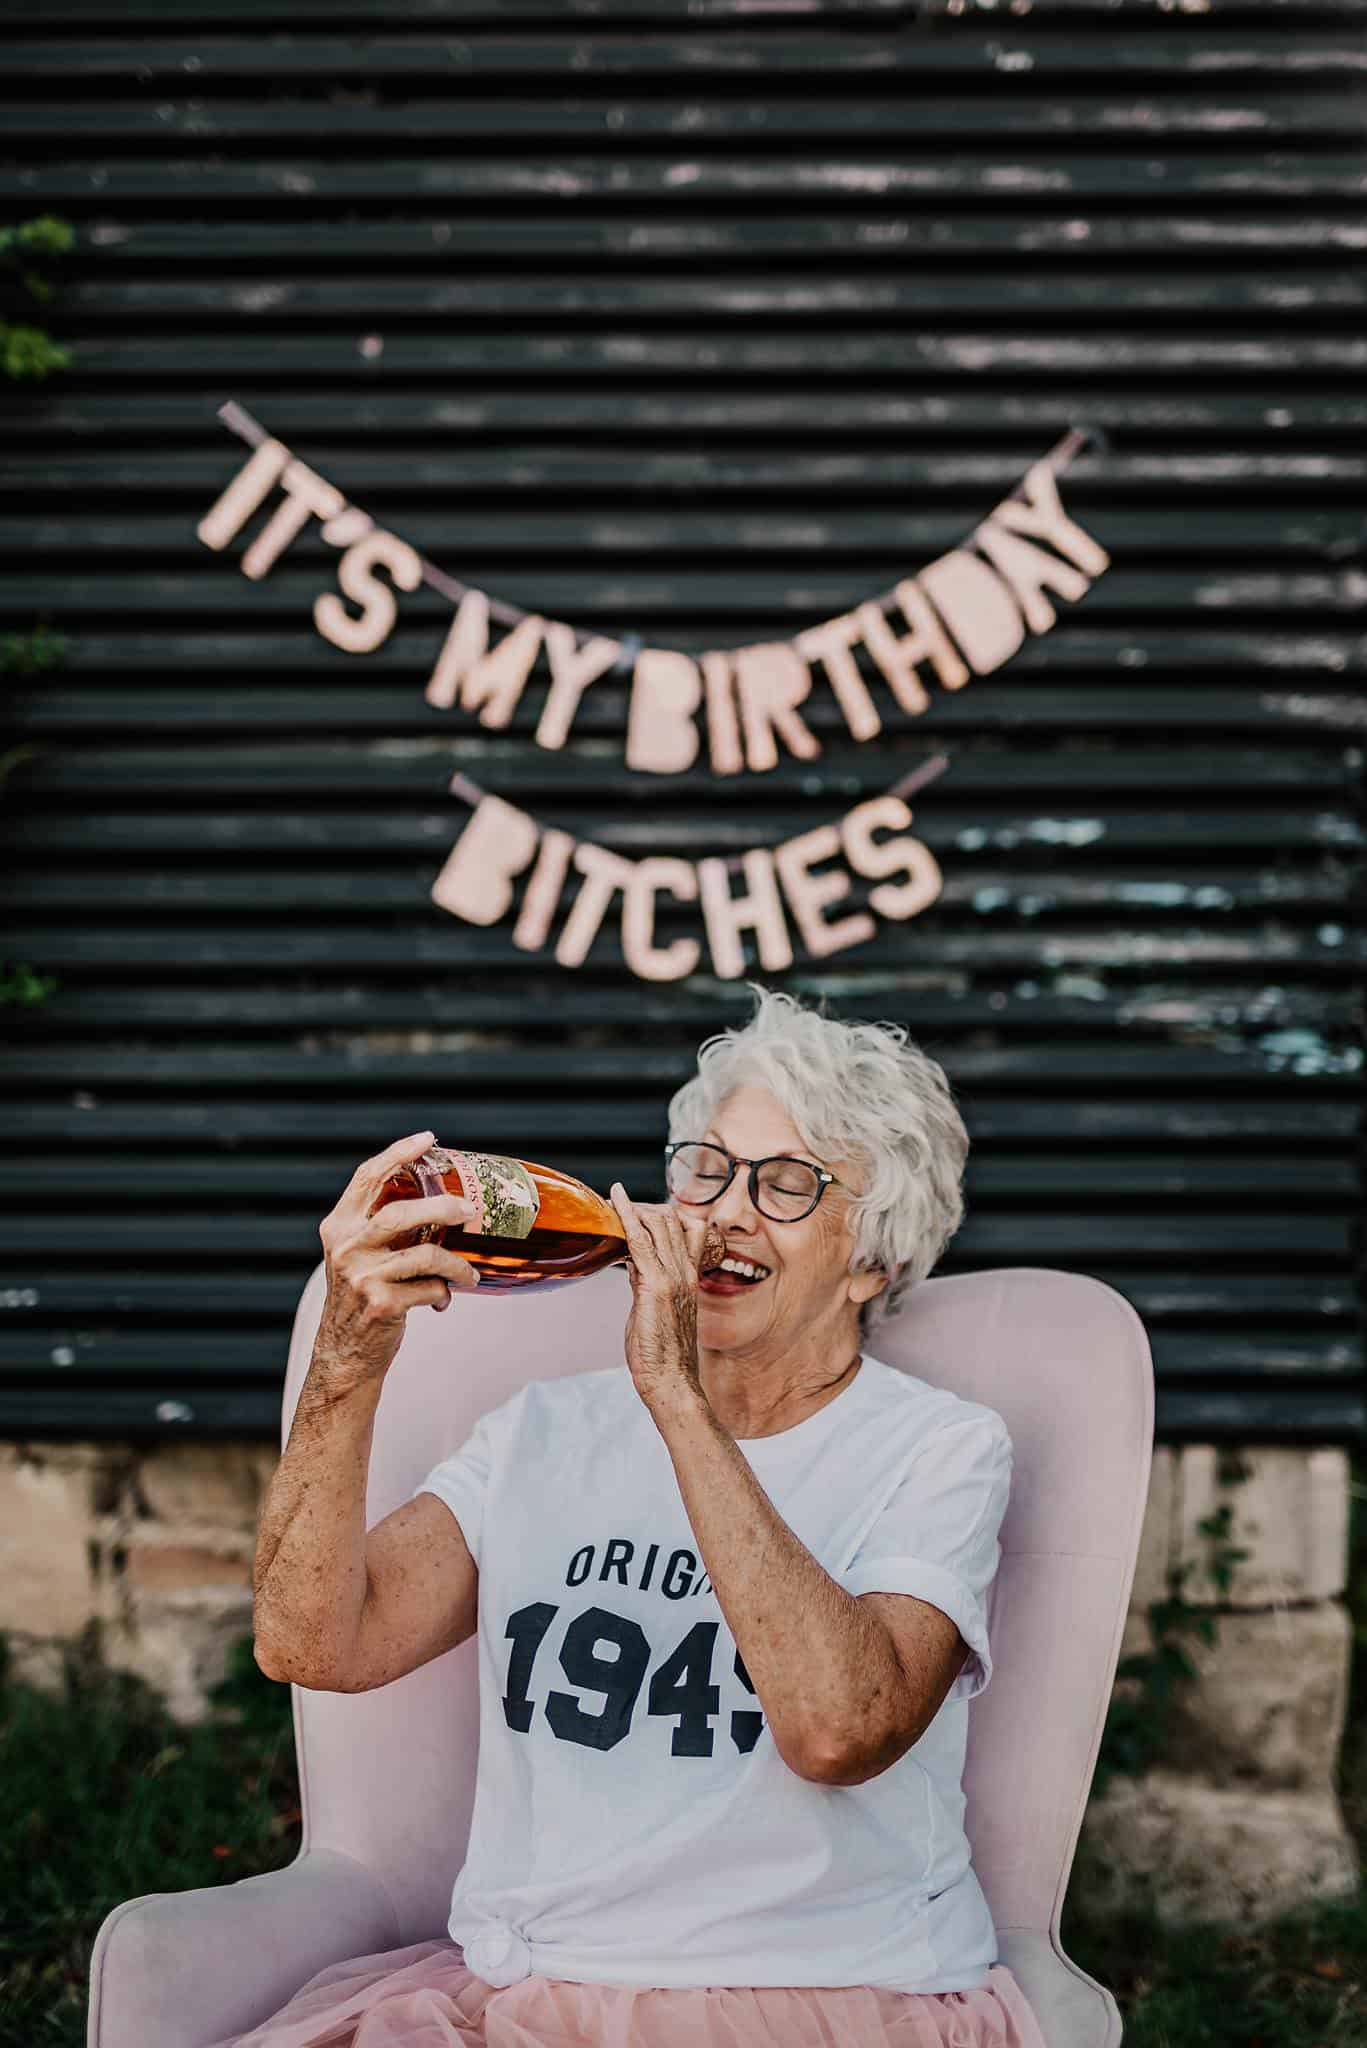 An old grandma is celebrating her birthday by drinking some alcohol